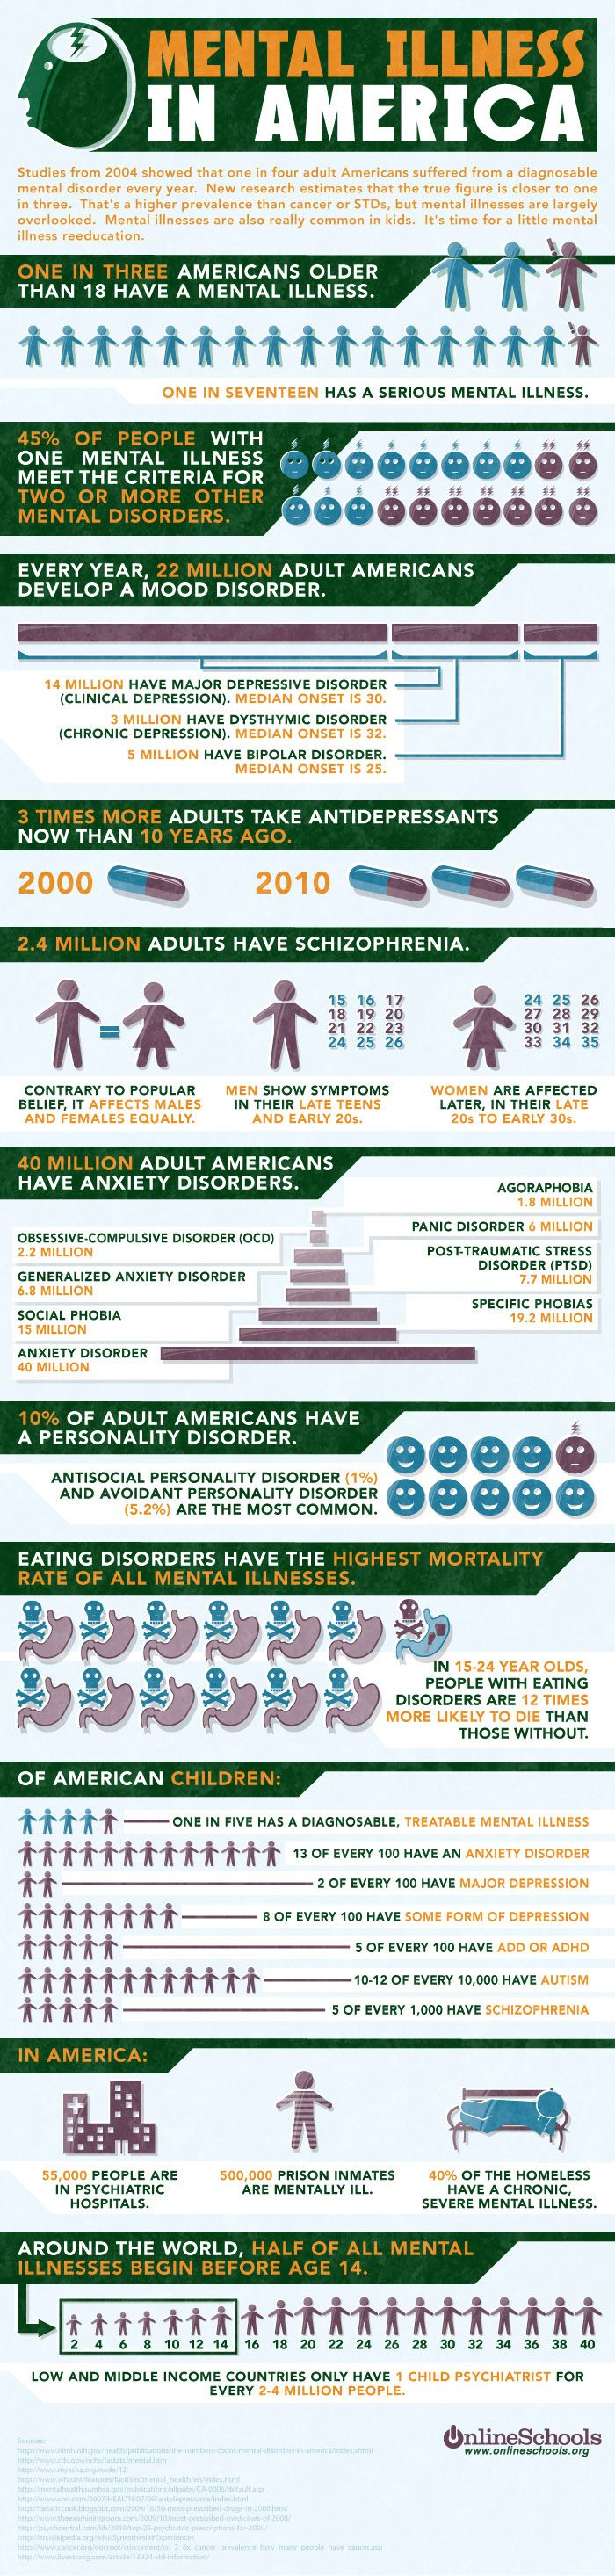 Mental Illness in America (infographic)